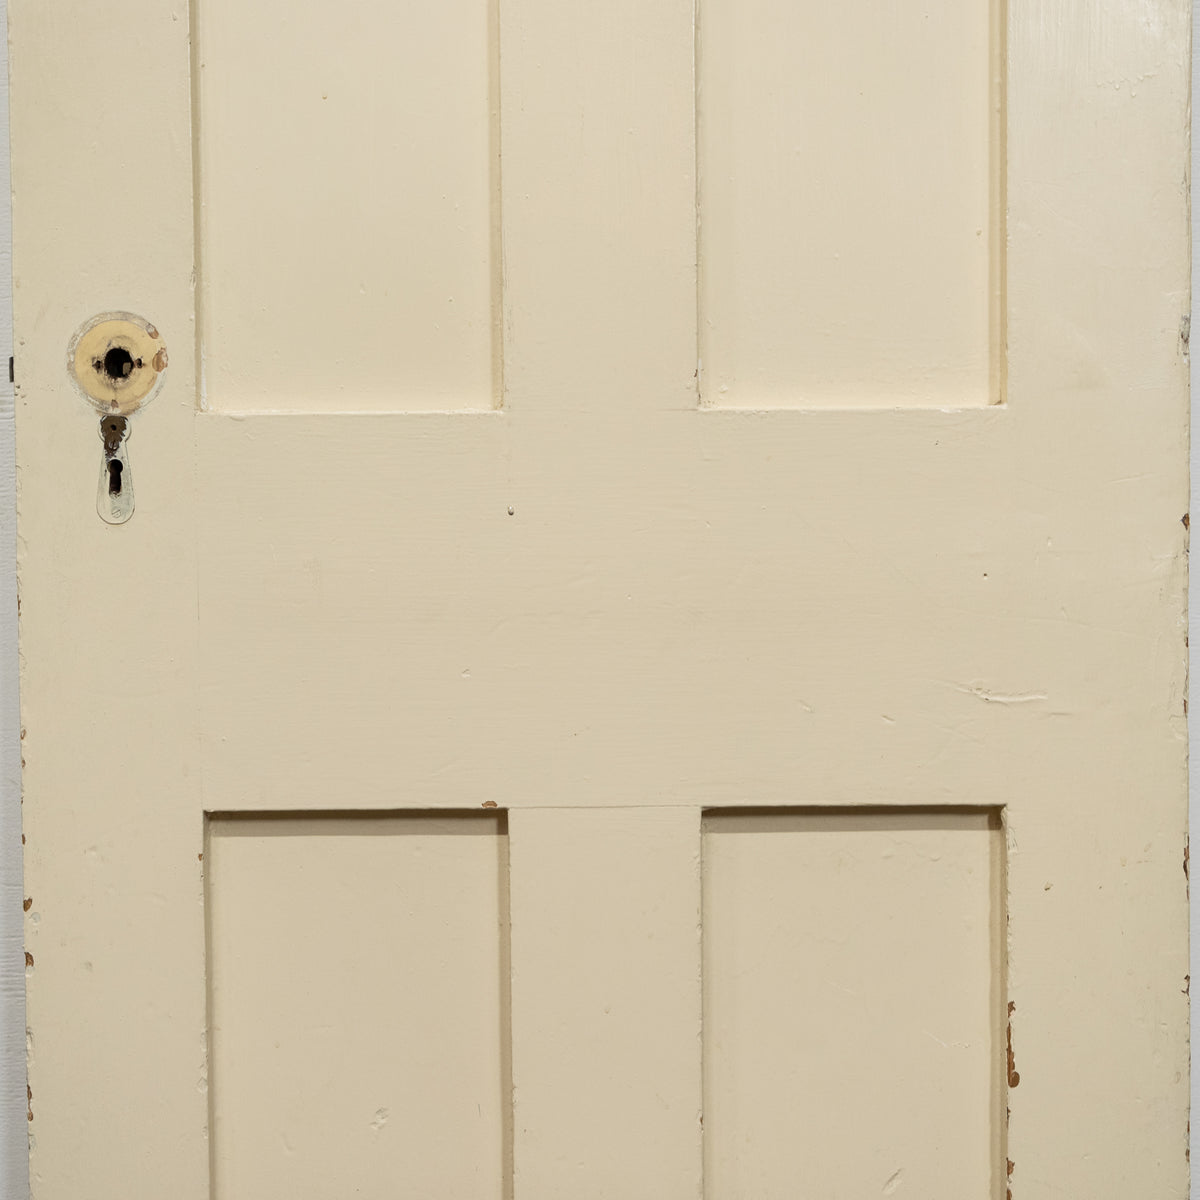 Antique Victorian 4 Panel Door - 184cm x 65cm | The Architectural Forum